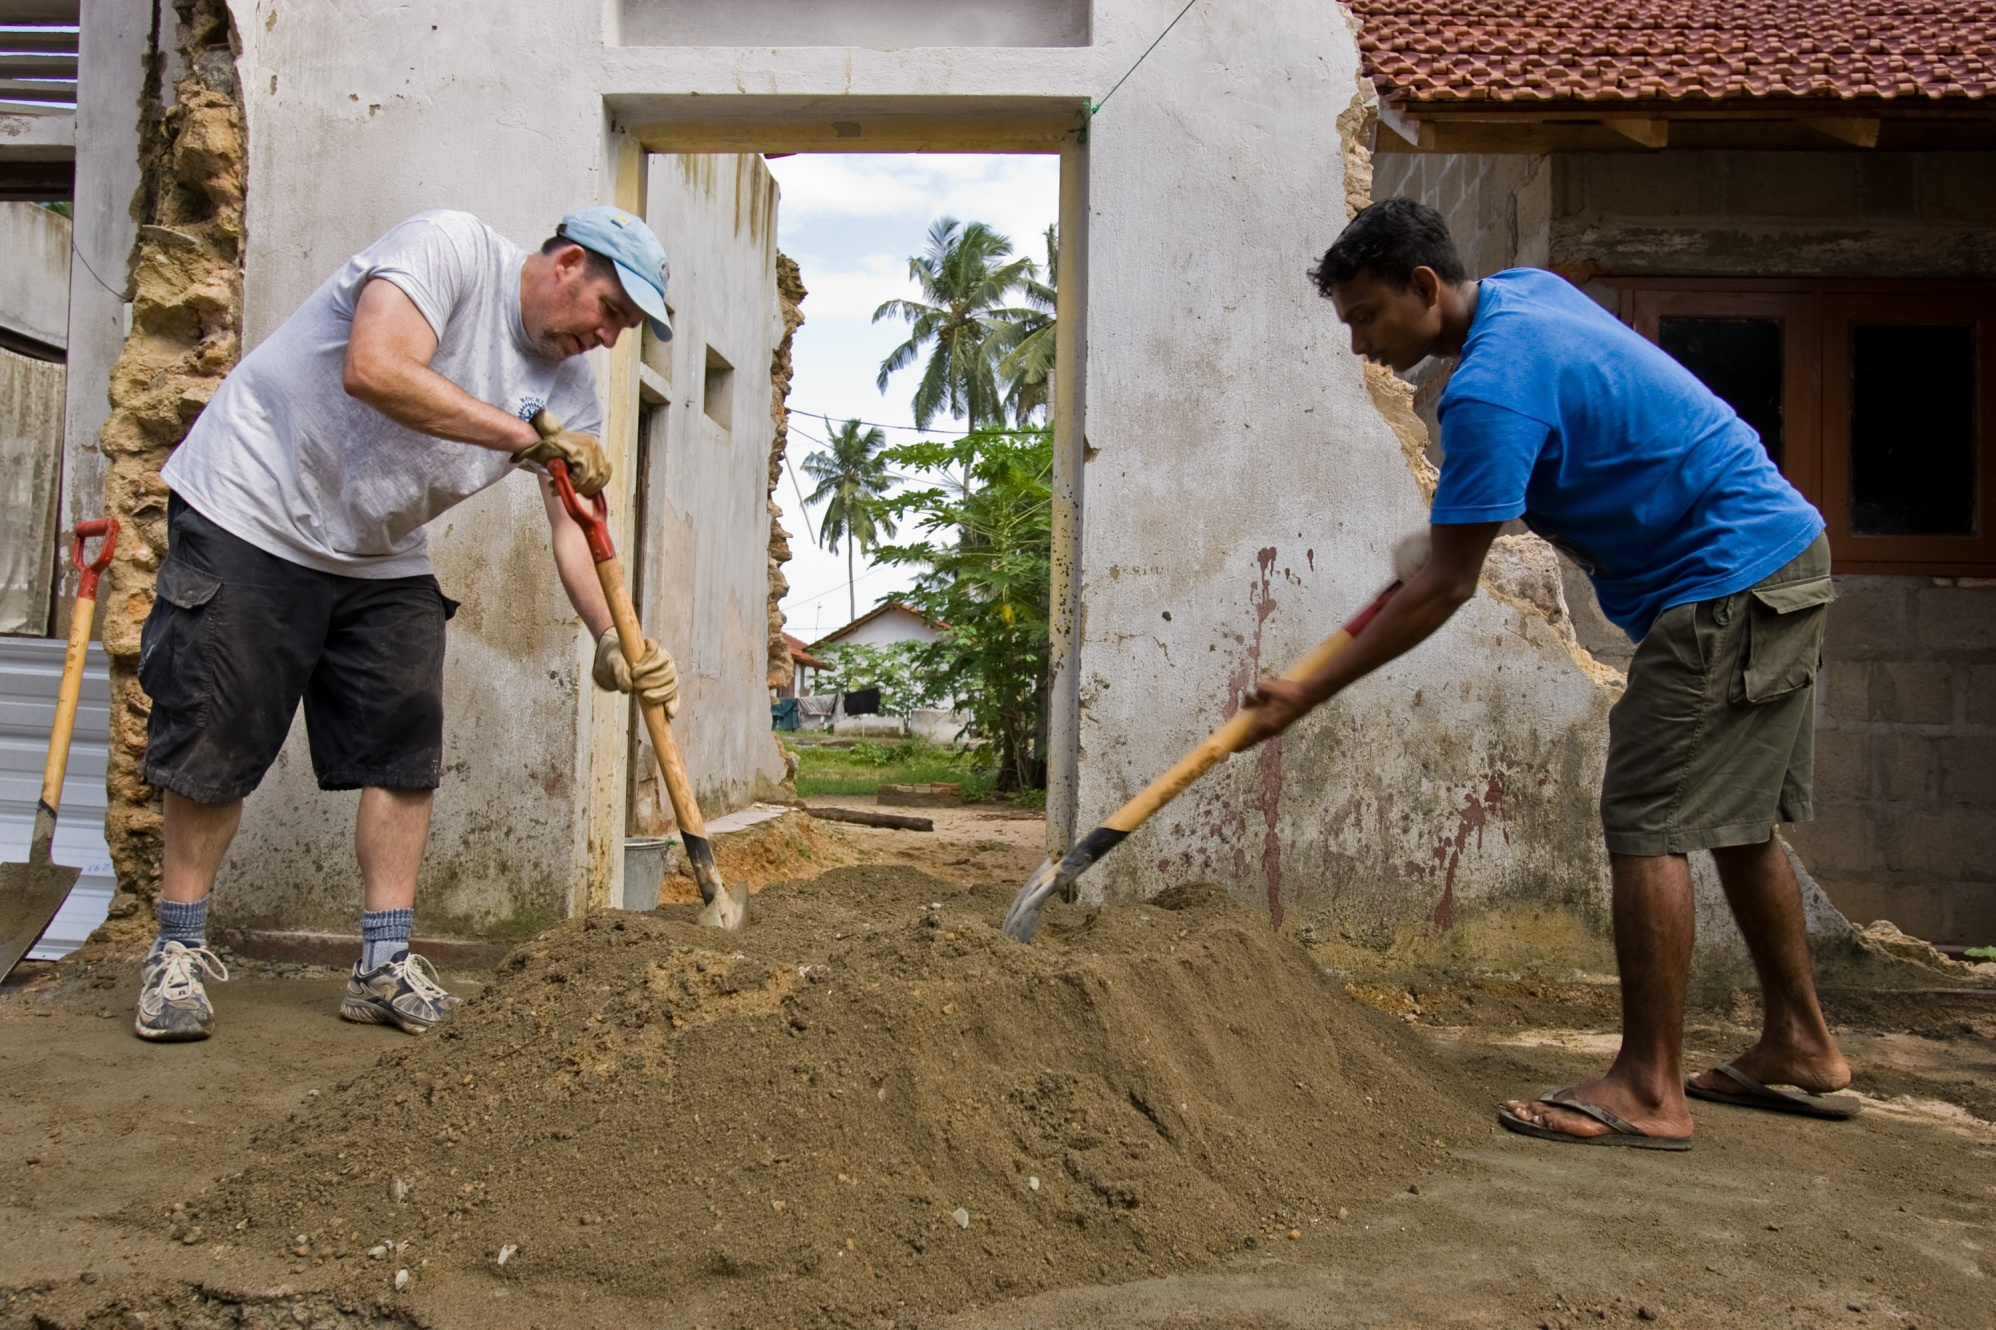 A member of the Rotary Club of Rockland, Maine, USA, and a local worker mix concrete at a construction site in Sri Lanka. Eleven members of the club traveled there to rebuild homes destroyed by the 2004 tsunami. They worked with Habitat for Humanity's Global Village program, in which international volunteers, homeowners, and local volunteers build homes together.